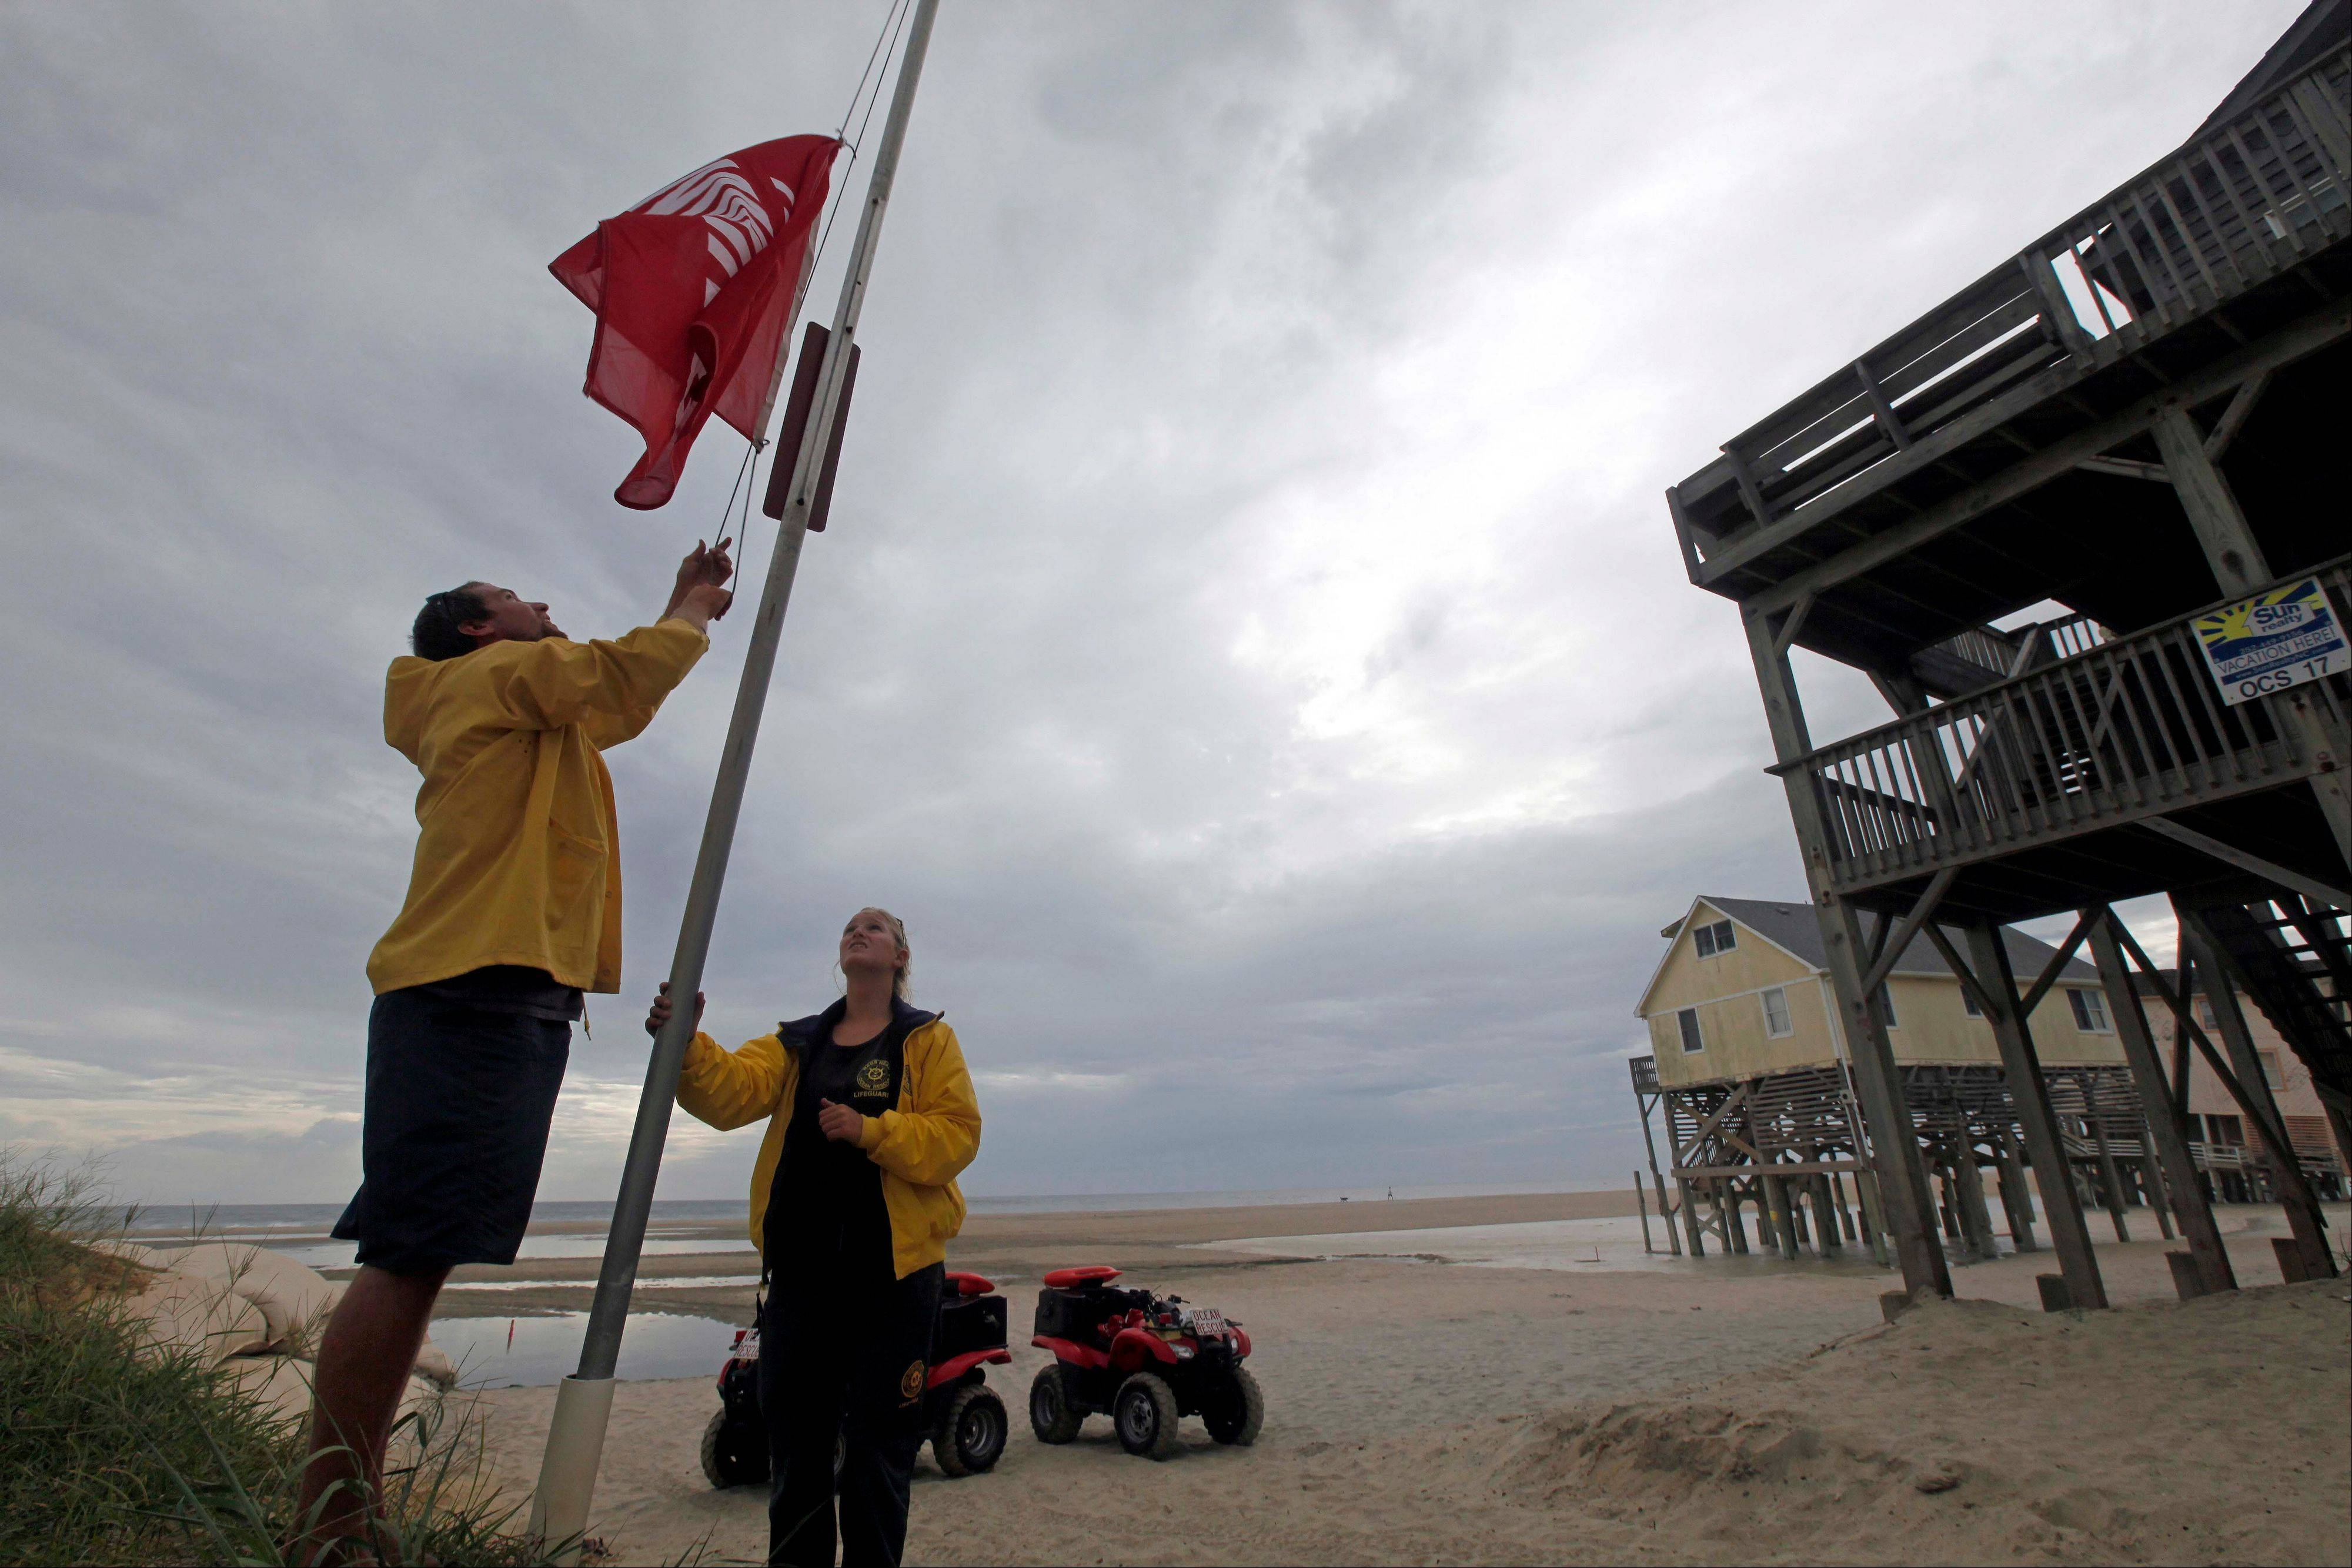 Nags Head Ocean Rescue lifeguards Ben Mechak, left, an Erika Audfroid hoist a no swimming flag in Nags Head, N.C., Friday, Aug. 26, 2011 as Hurricane Irene takes aim at the North Carolina coast. The full force of Hurricane Irene was still a day away from the East Coast but heightened waves began hitting North Carolina's Outer Banks early Friday.